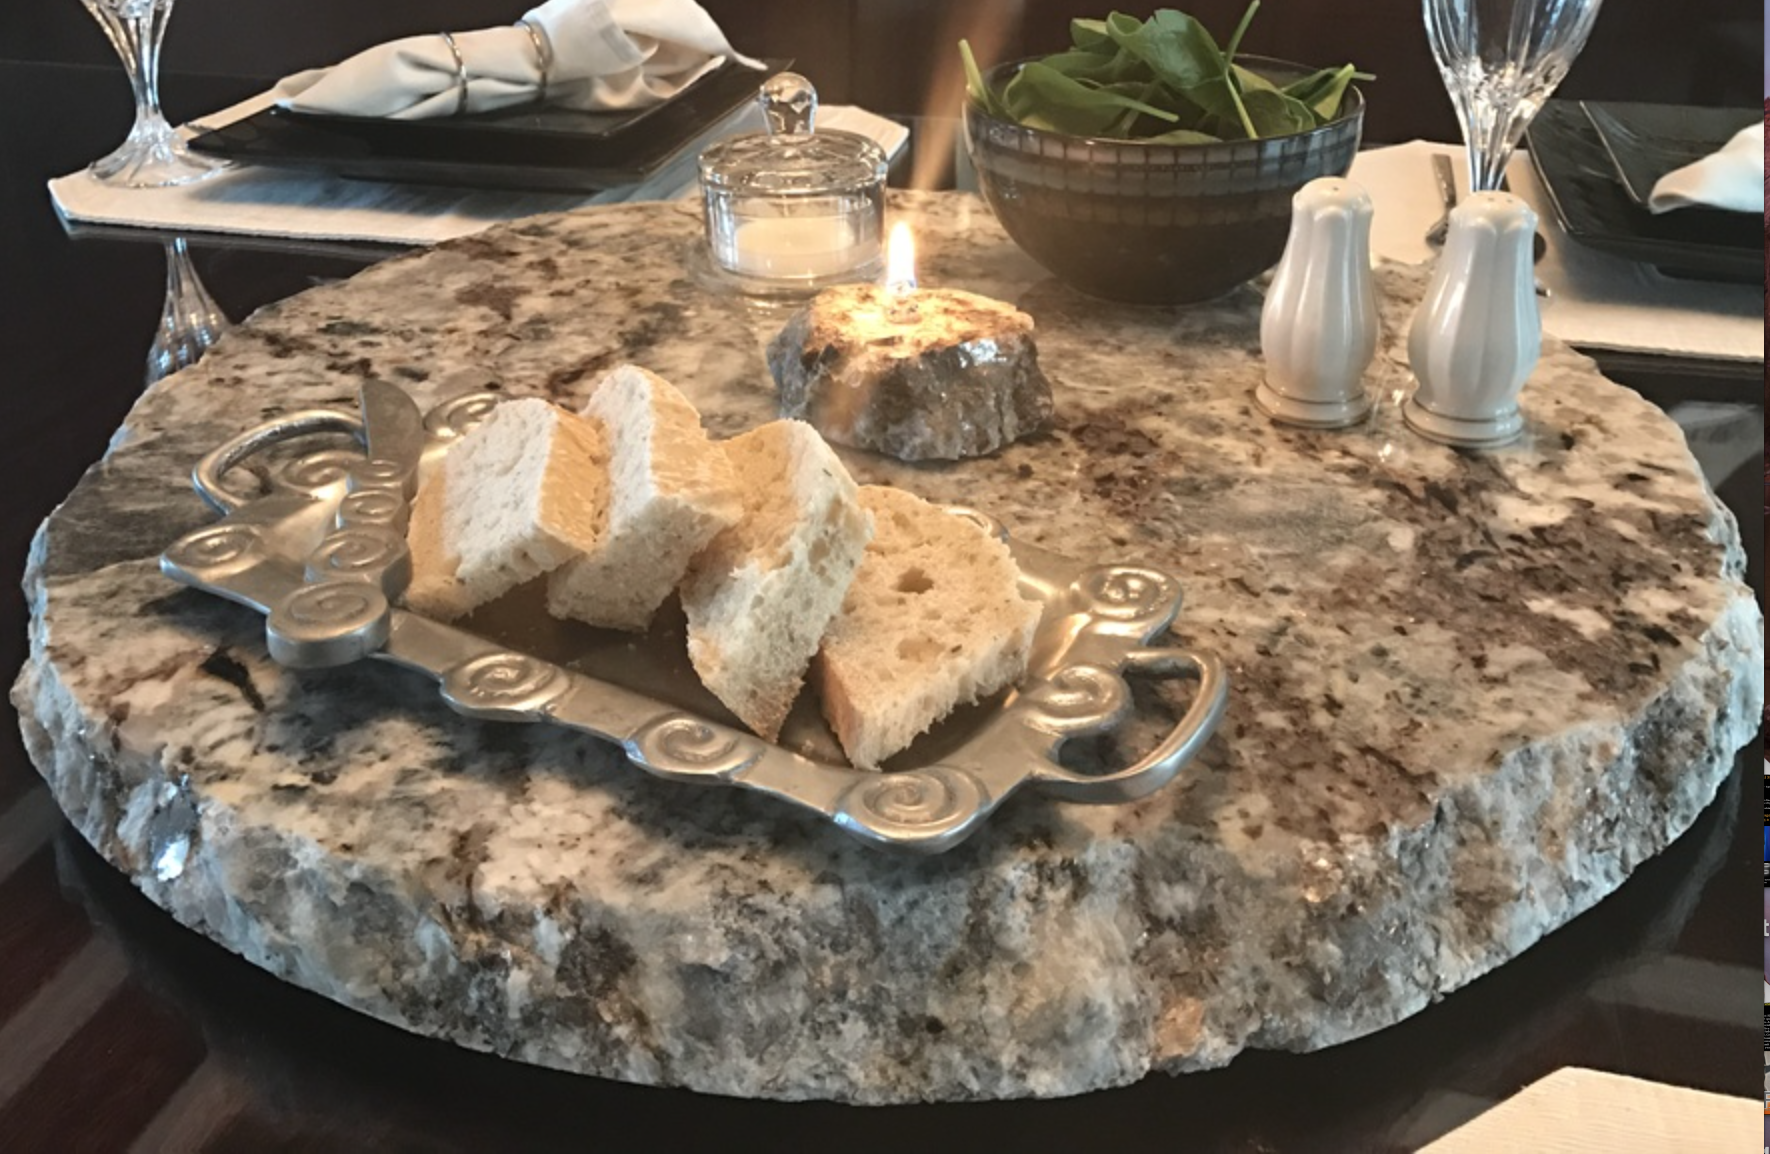 Debi Letner - http://www.rougharoundtheedge.comI hand chisel oil candles, lazy susans, serving stones with oil candles, & wine glasses out of granite, slate, and other natural stones. Each piece is custom made, unique, & will last for generations.